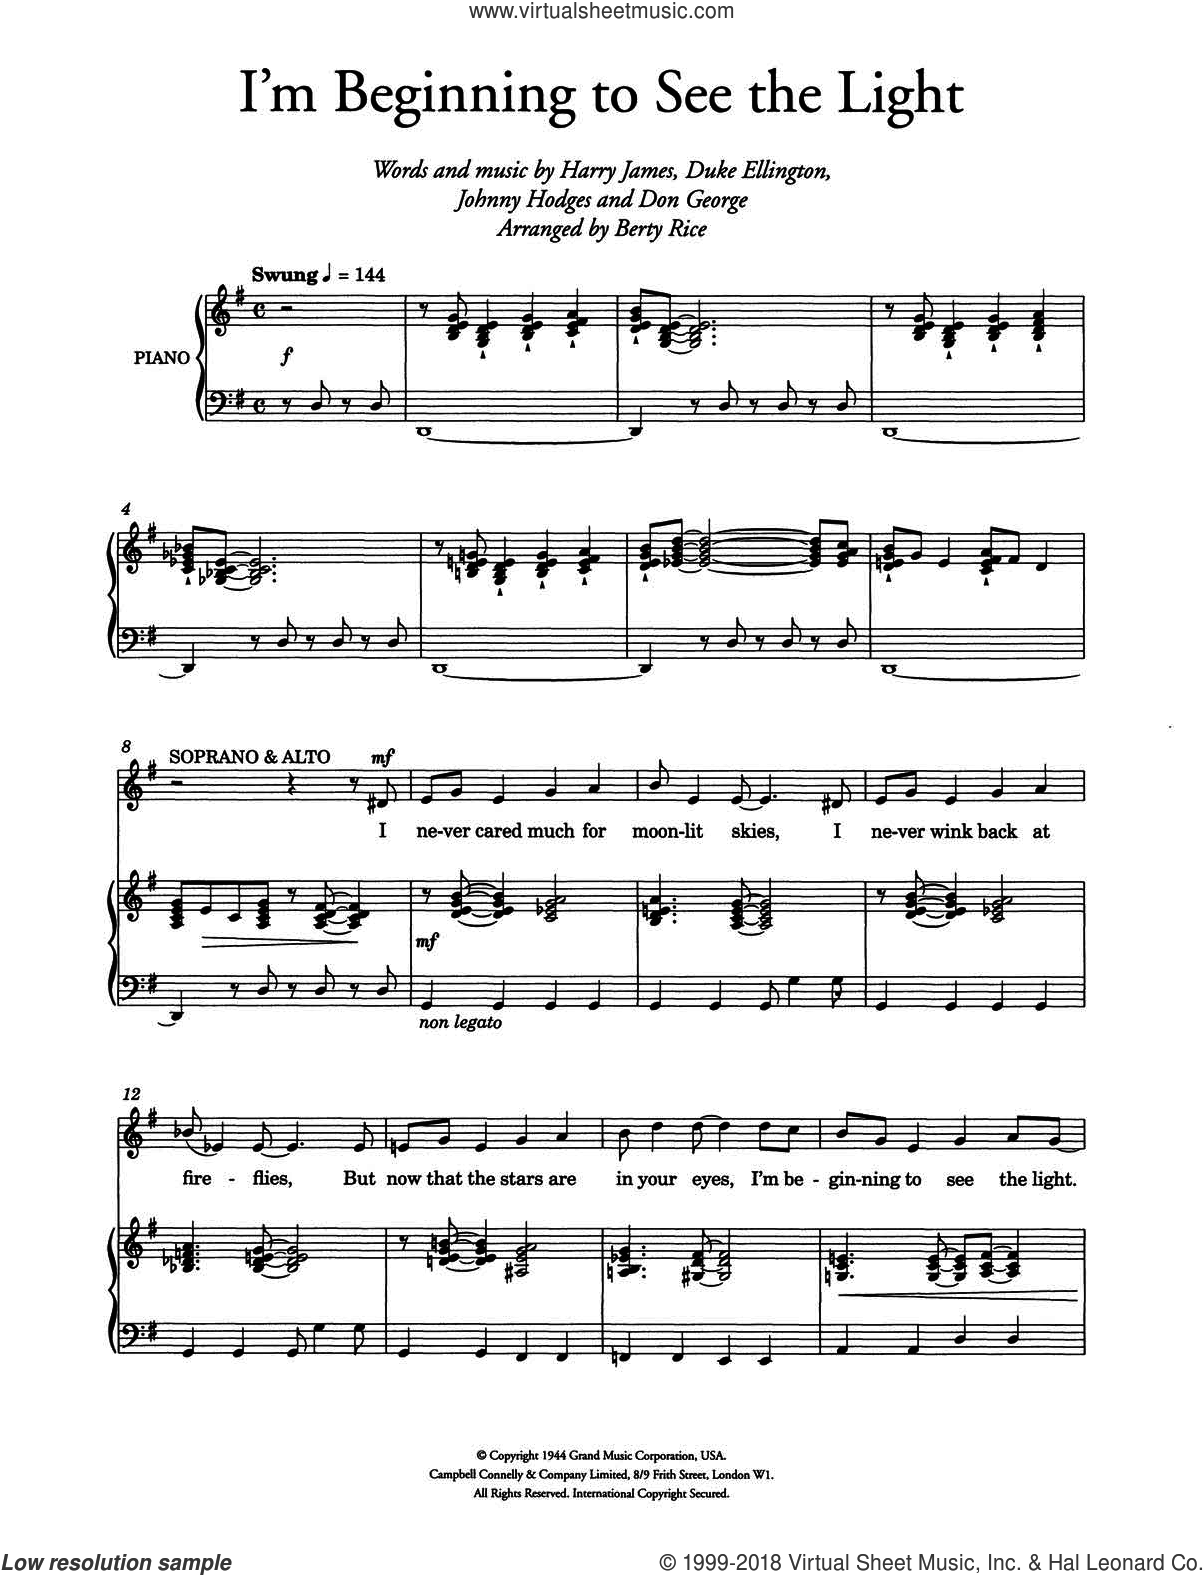 I'm Beginning To See The Light (arr. Berty Rice) sheet music for choir by Johnny Hodges, Ella Fitzgerald, Don George, Duke Ellington and Harry James. Score Image Preview.